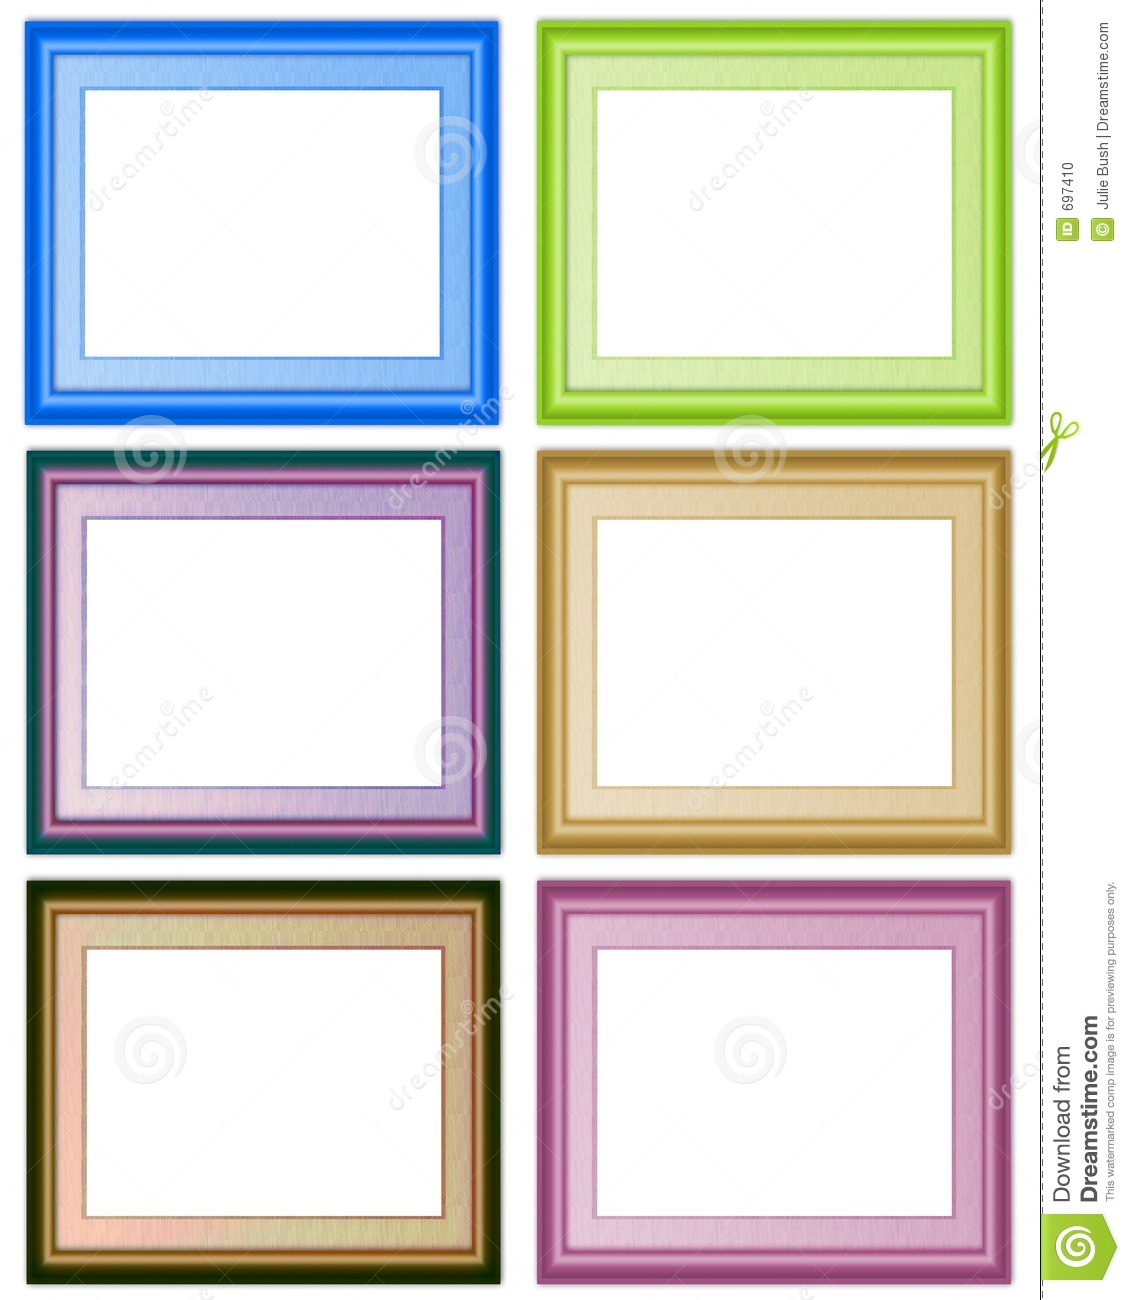 6 frames stock photo image 697410 - Six pictures photo frame ...